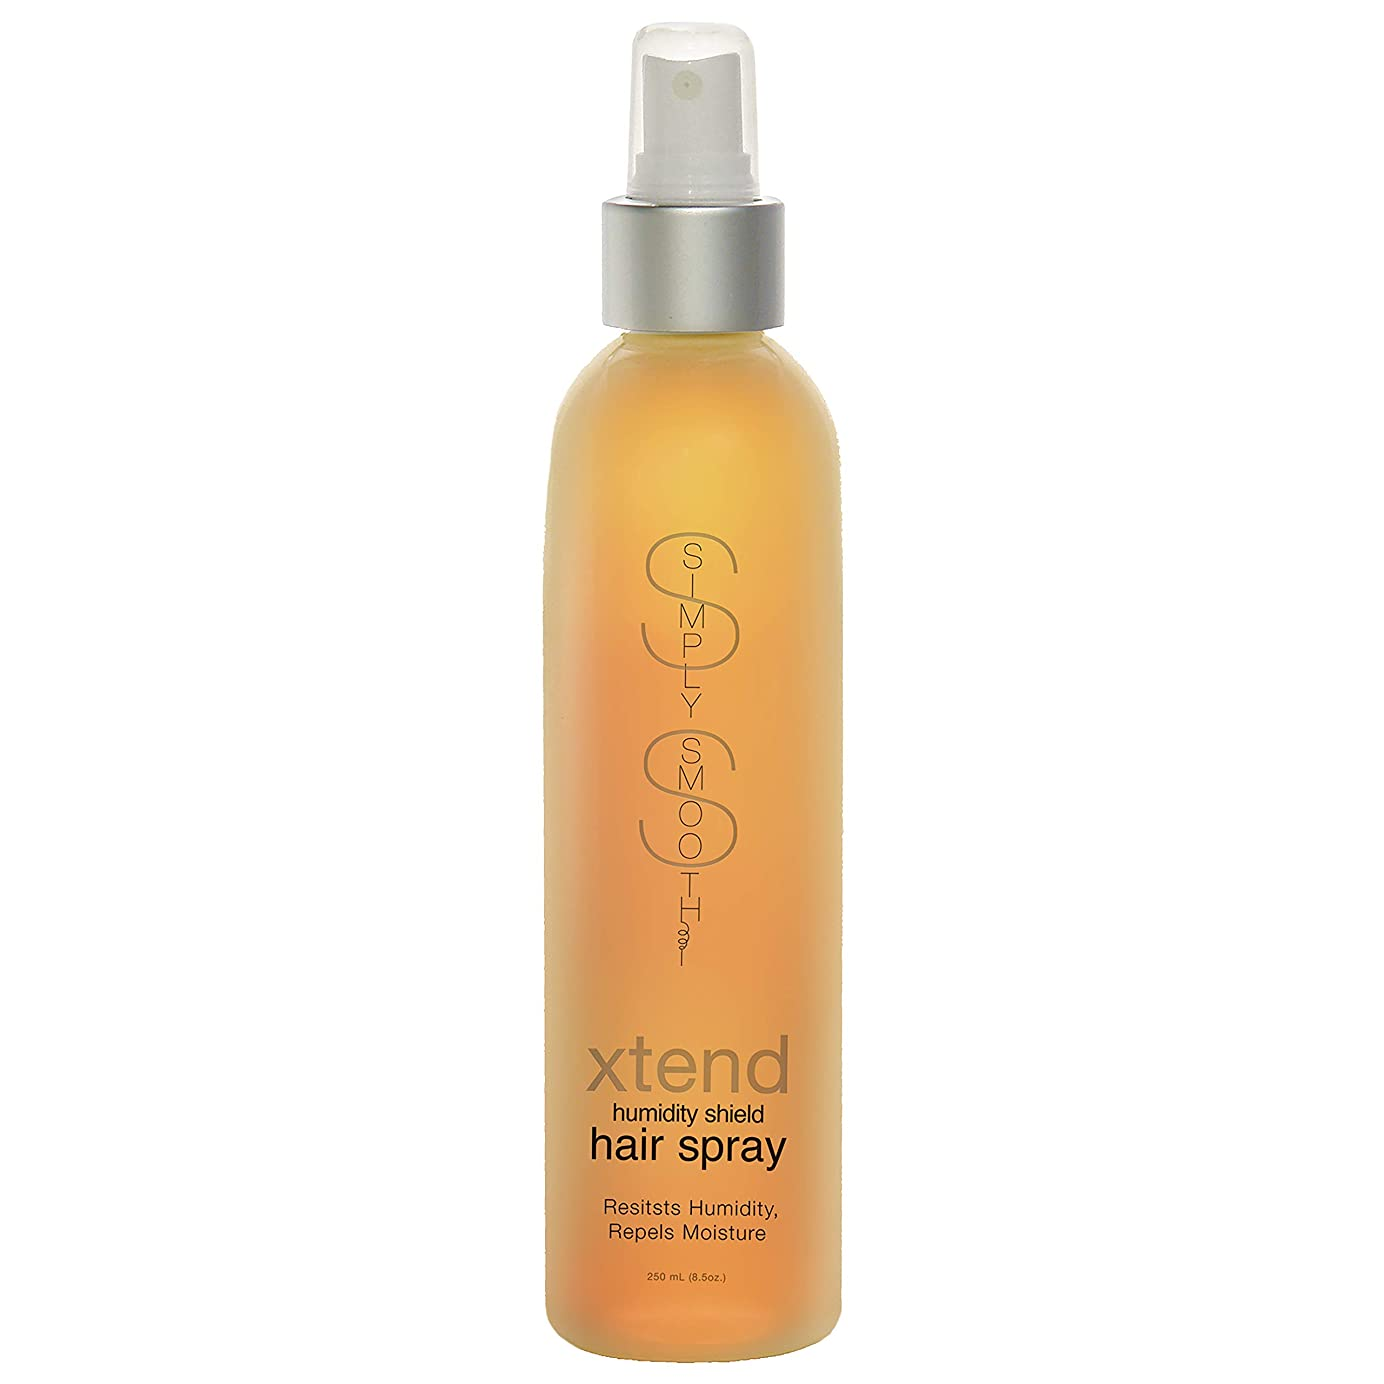 道鎮痛剤現象Simply Smooth Xtend Humidity Shield Hairspray(Non-Aero) 8 oz. (並行輸入品)